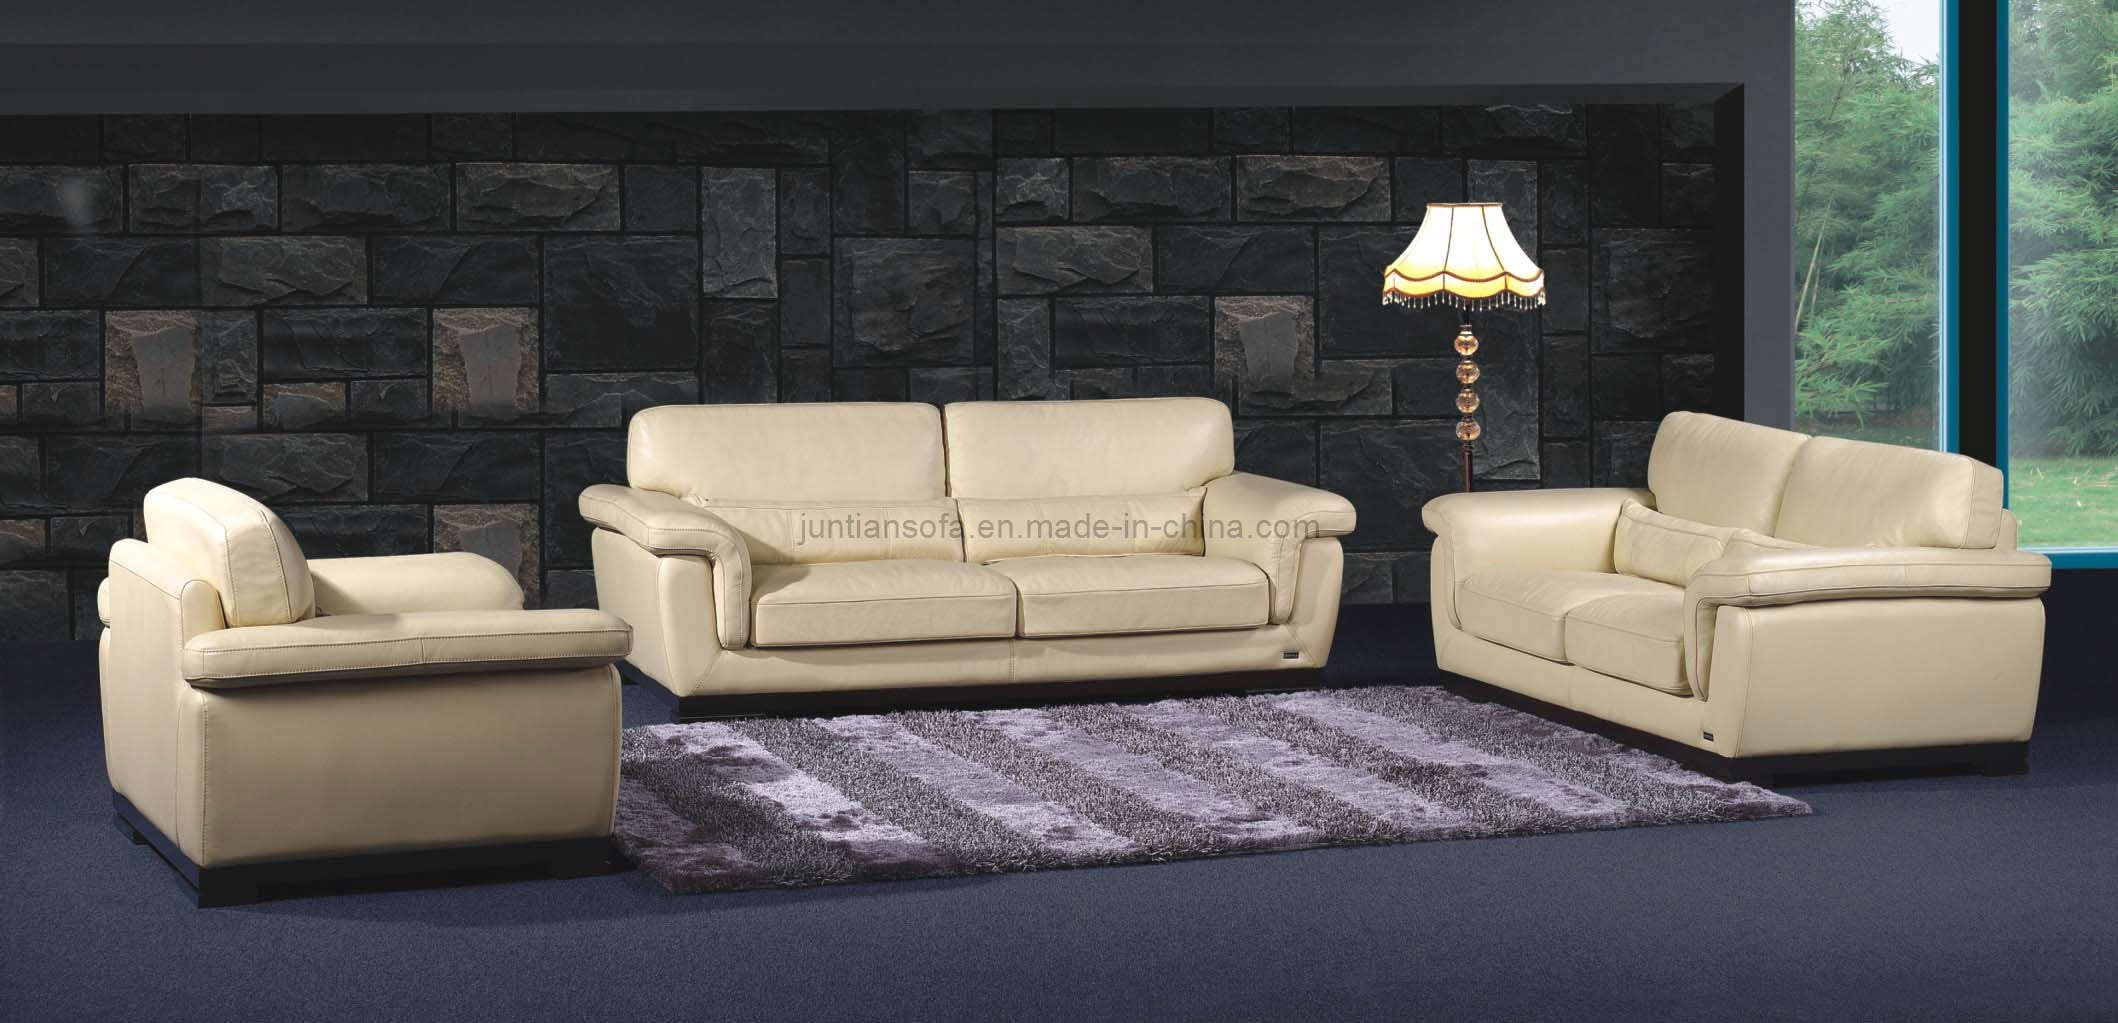 High Quality Sofa Best Lovely Sectional For Room Ideas With Online